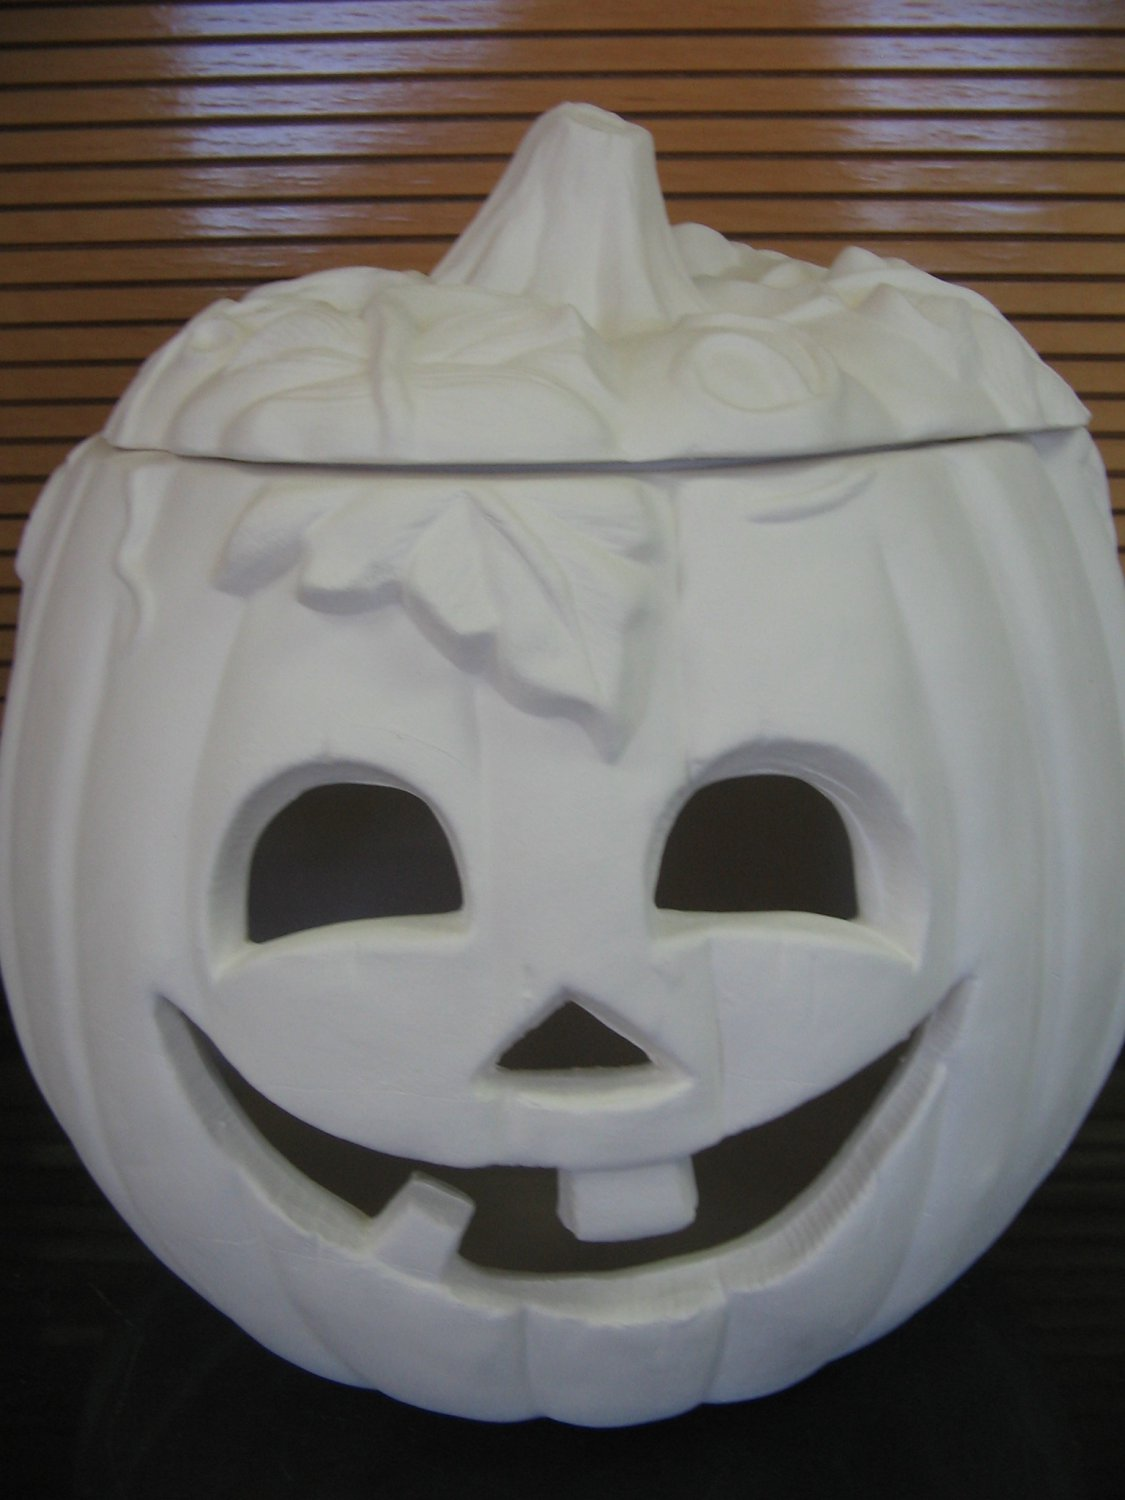 Large Ceramic Pumpkin With Face Cut Out Bisque Ready To Paint Ceramics U Paint